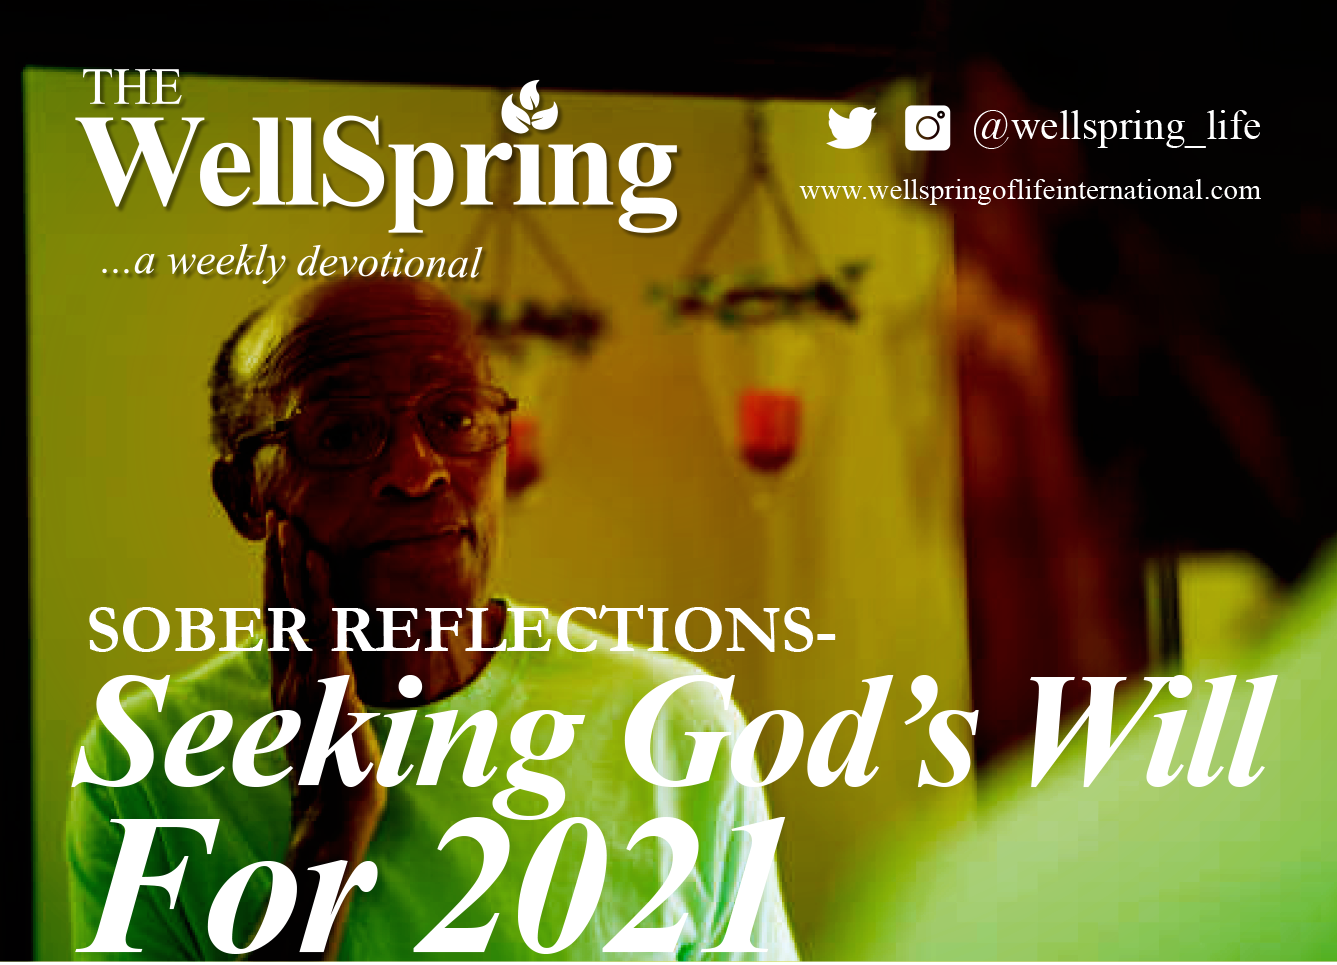 Sober Reflections-Seeking God's Will For 2021 post thumbnail